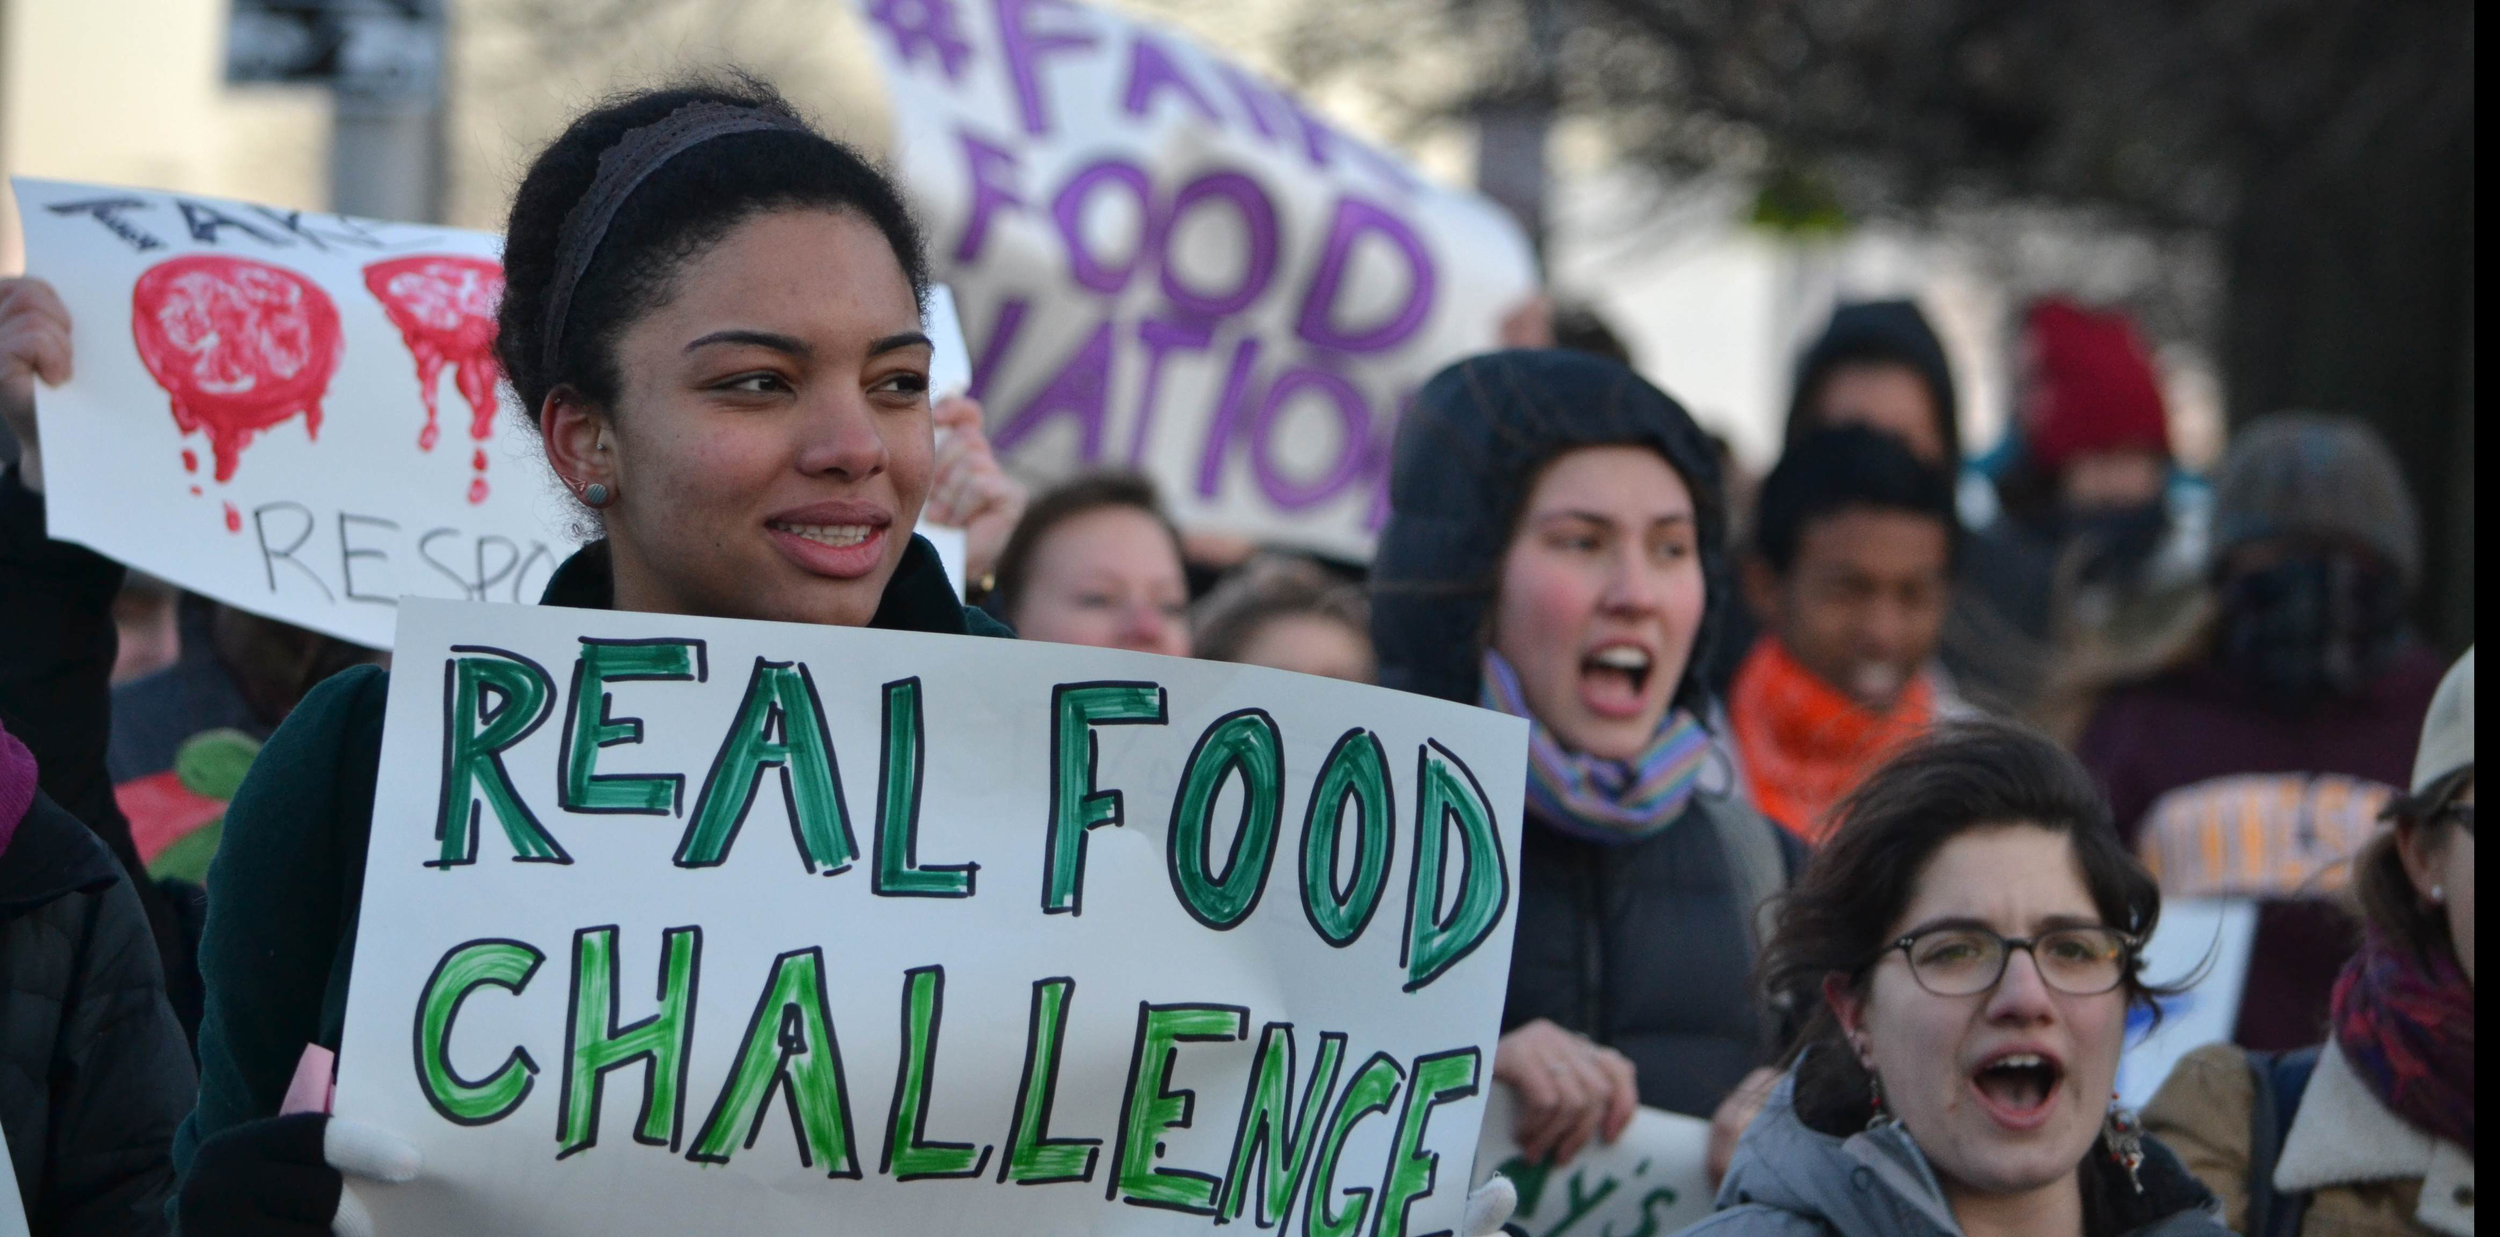 Students march for real food and fair food in solidarity with the Coalition of Immokalee Workers, at the 2013 National RFC Summit in Baltimore, MD.  Source: Real Food Challenge.